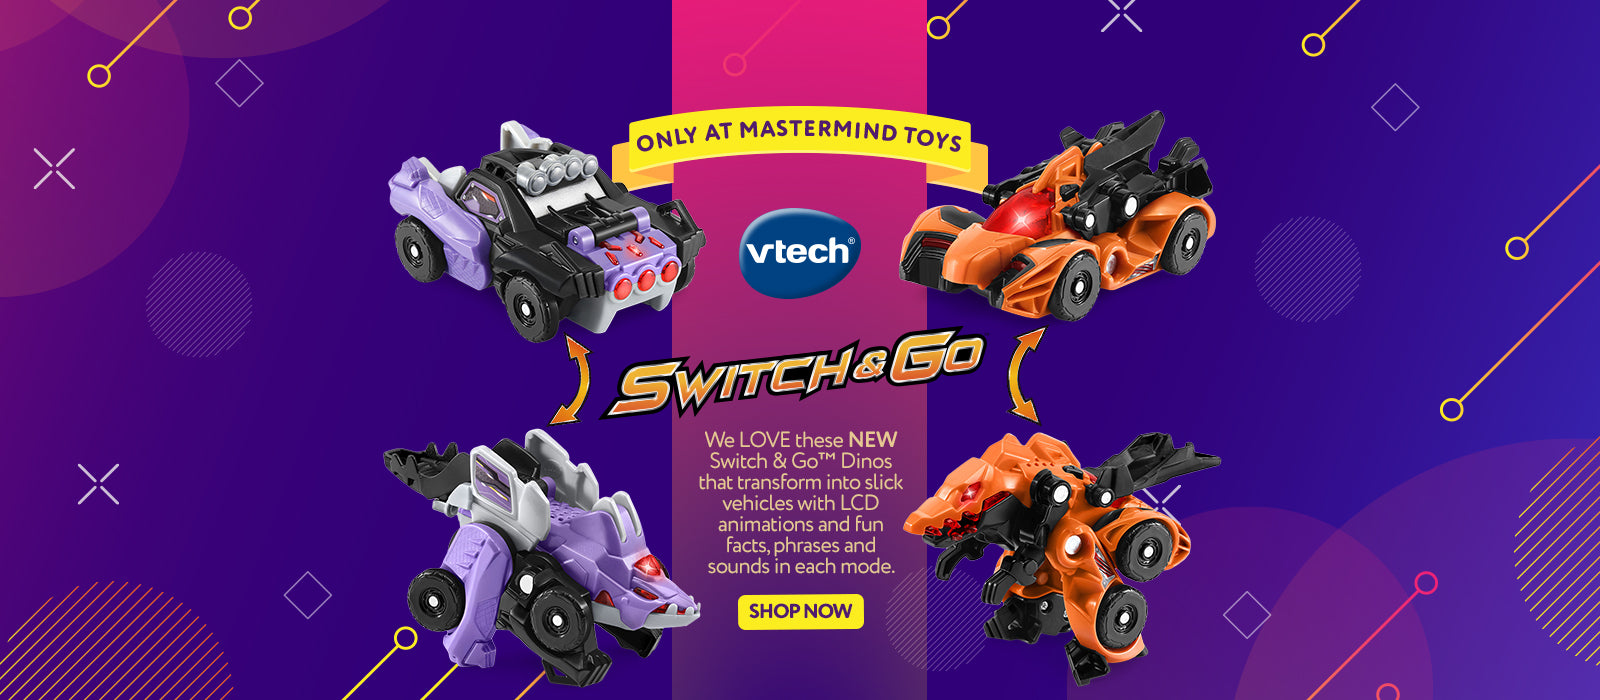 VTech Switch & Go